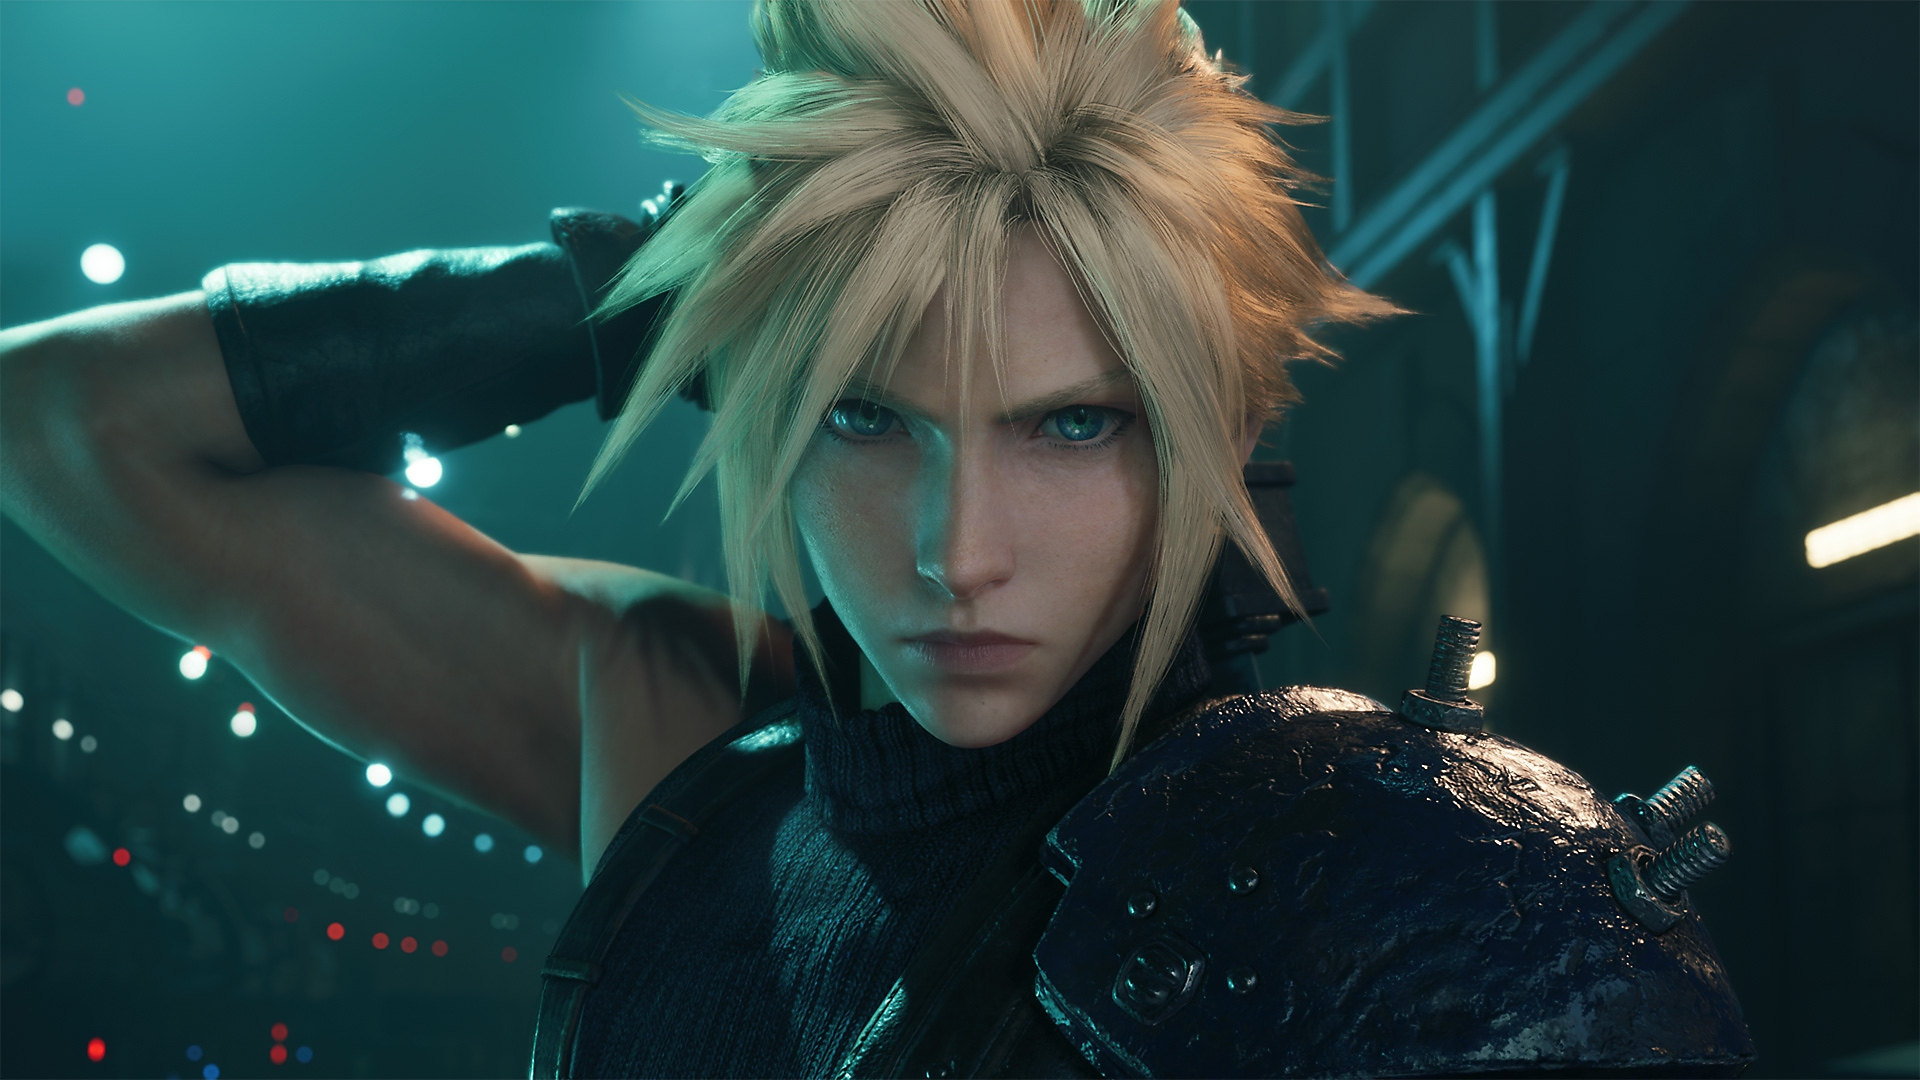 Final Fantasy VII Remake Intergrade - Key Features Screenshot